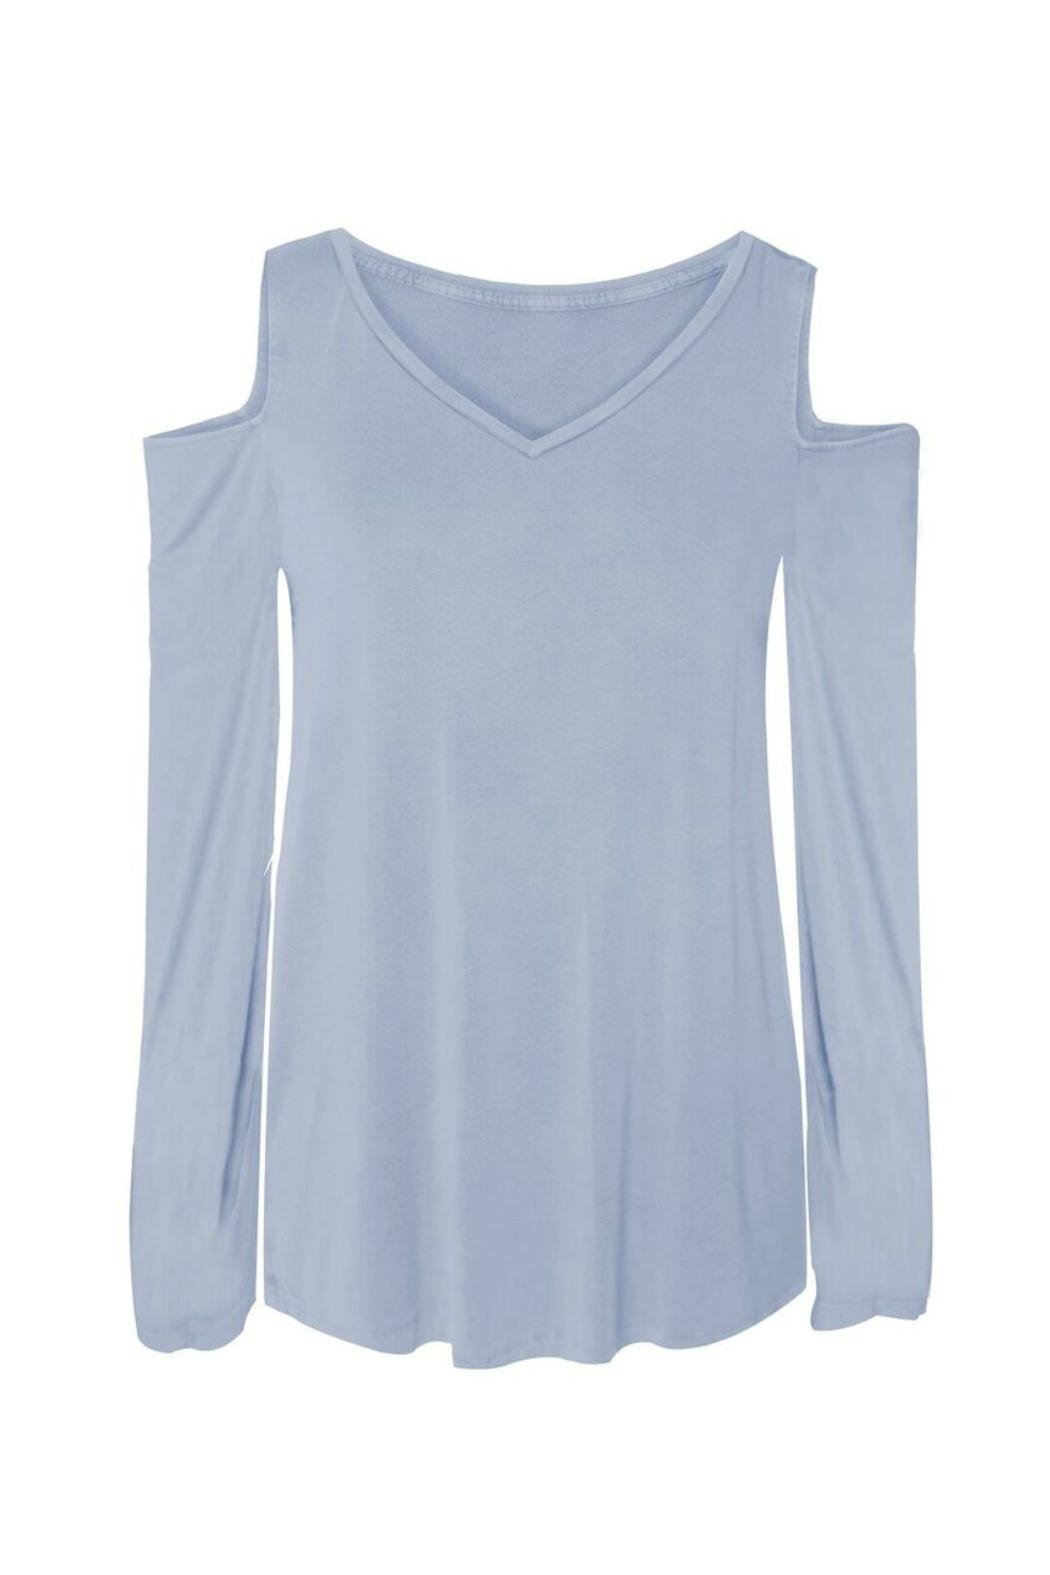 Dex Powder Blue Top - Main Image